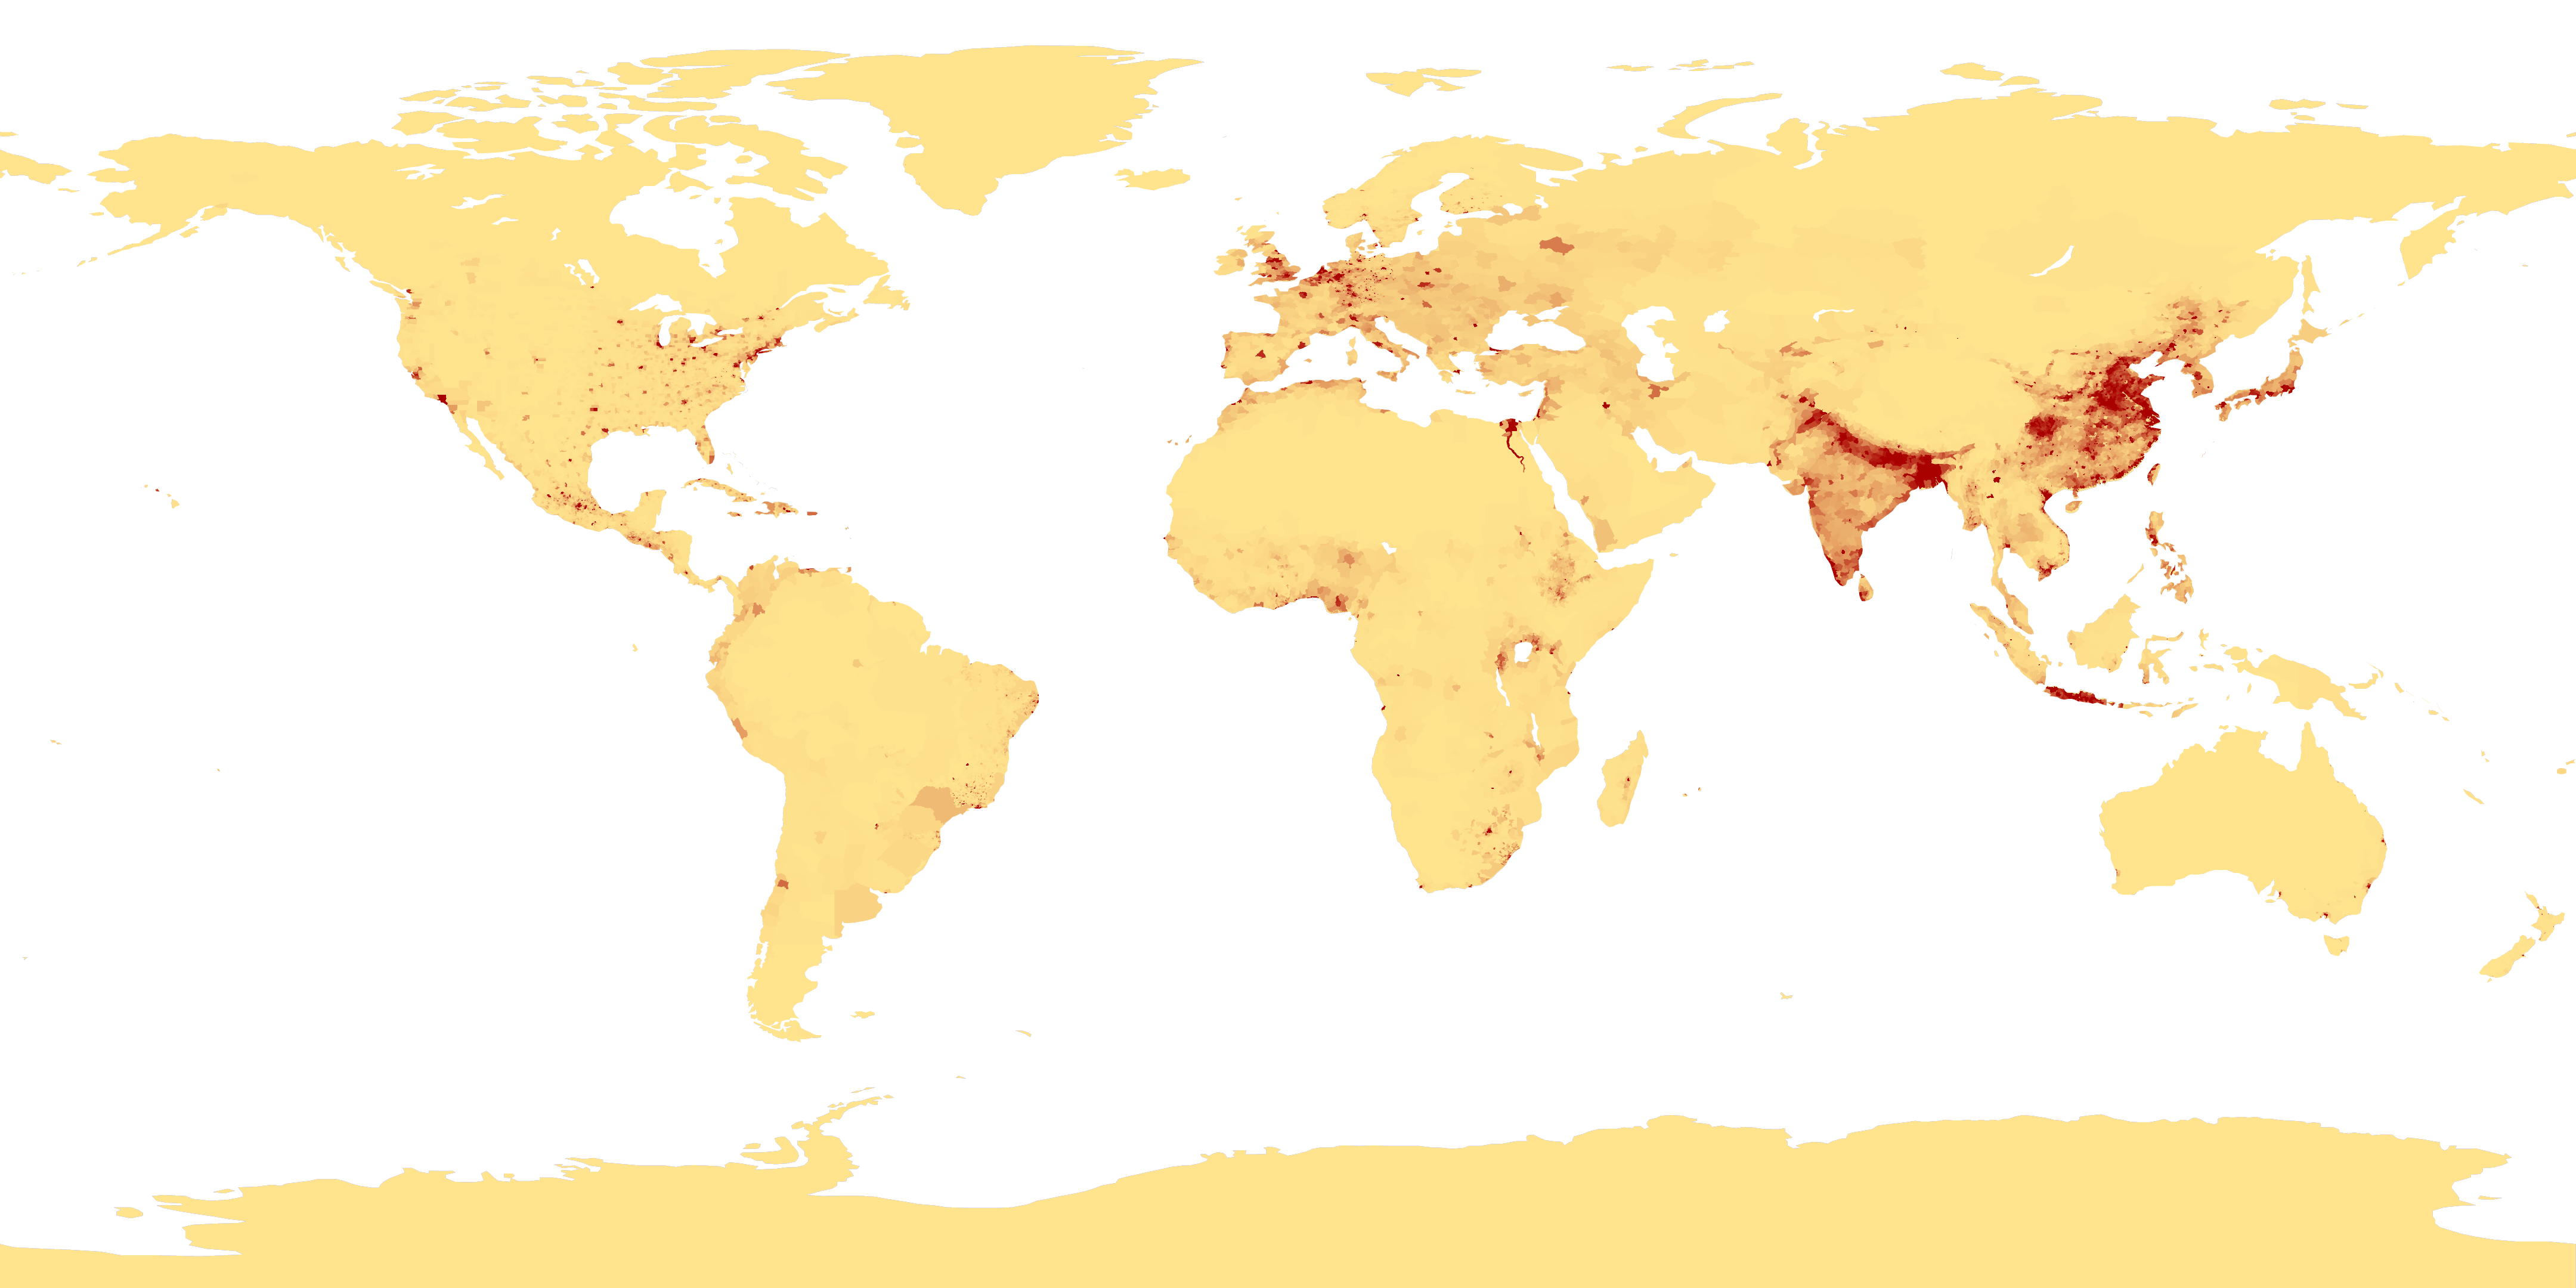 examples of megalopolis cities